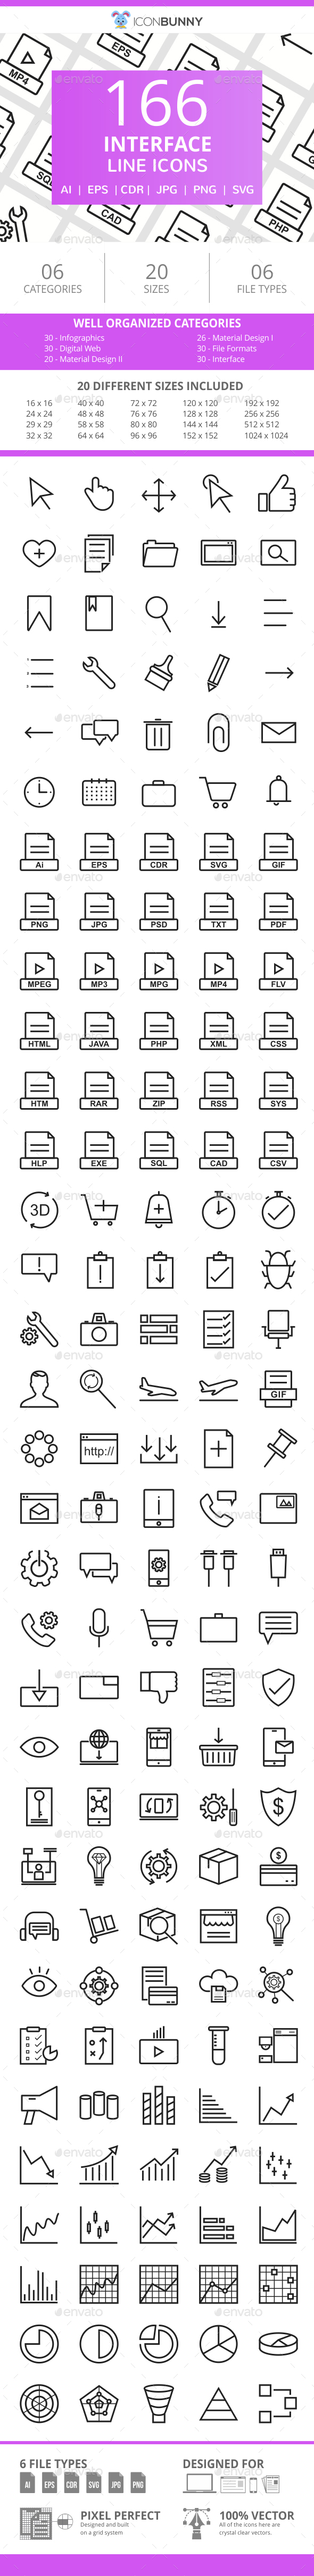 166 Objects Line Icons - Icons